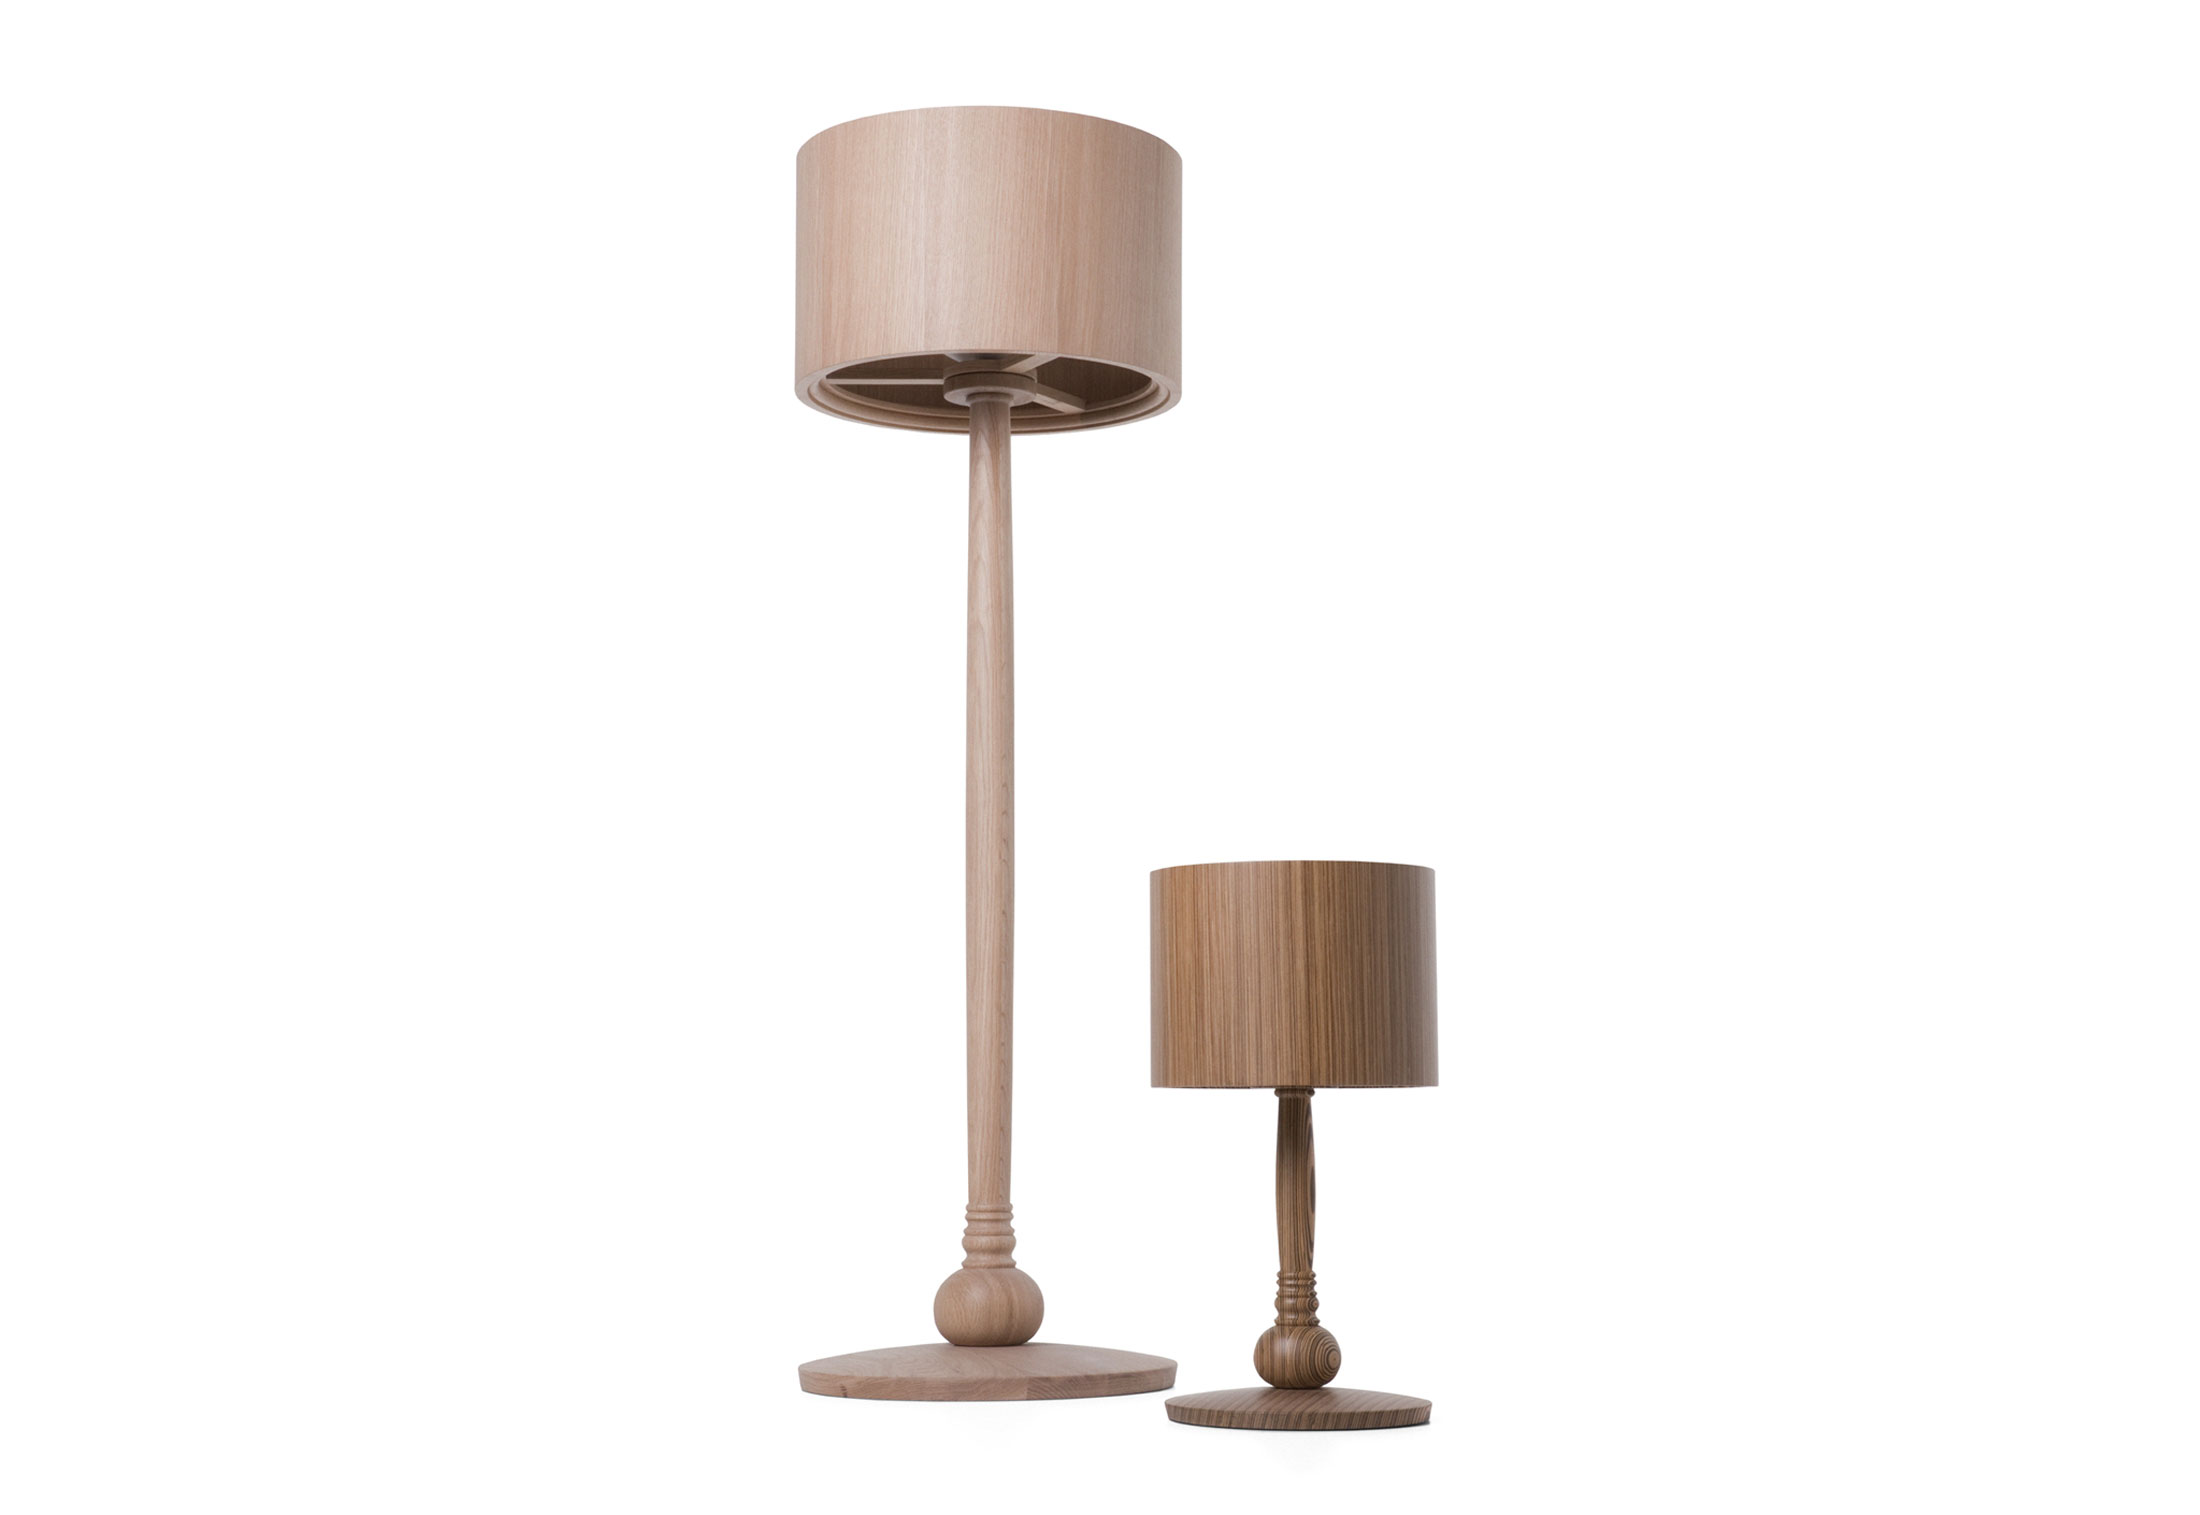 floors floor com lamp en deplain bonaldo tree light